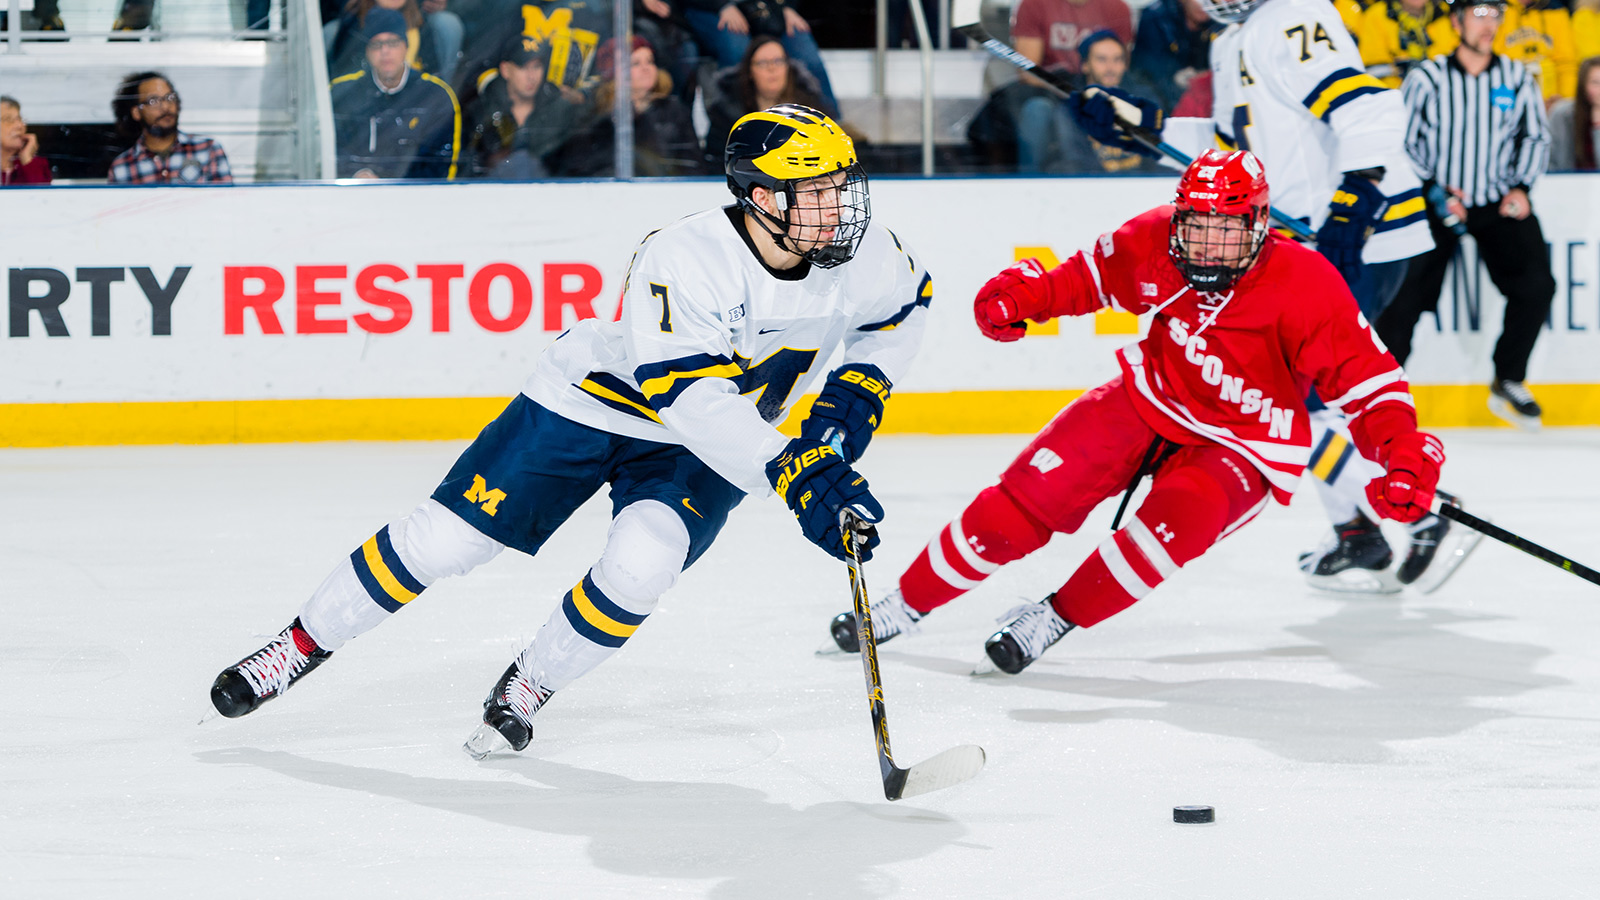 York, Lockwood Goals not Enough as Wolverines Fall at Wisconsin ...